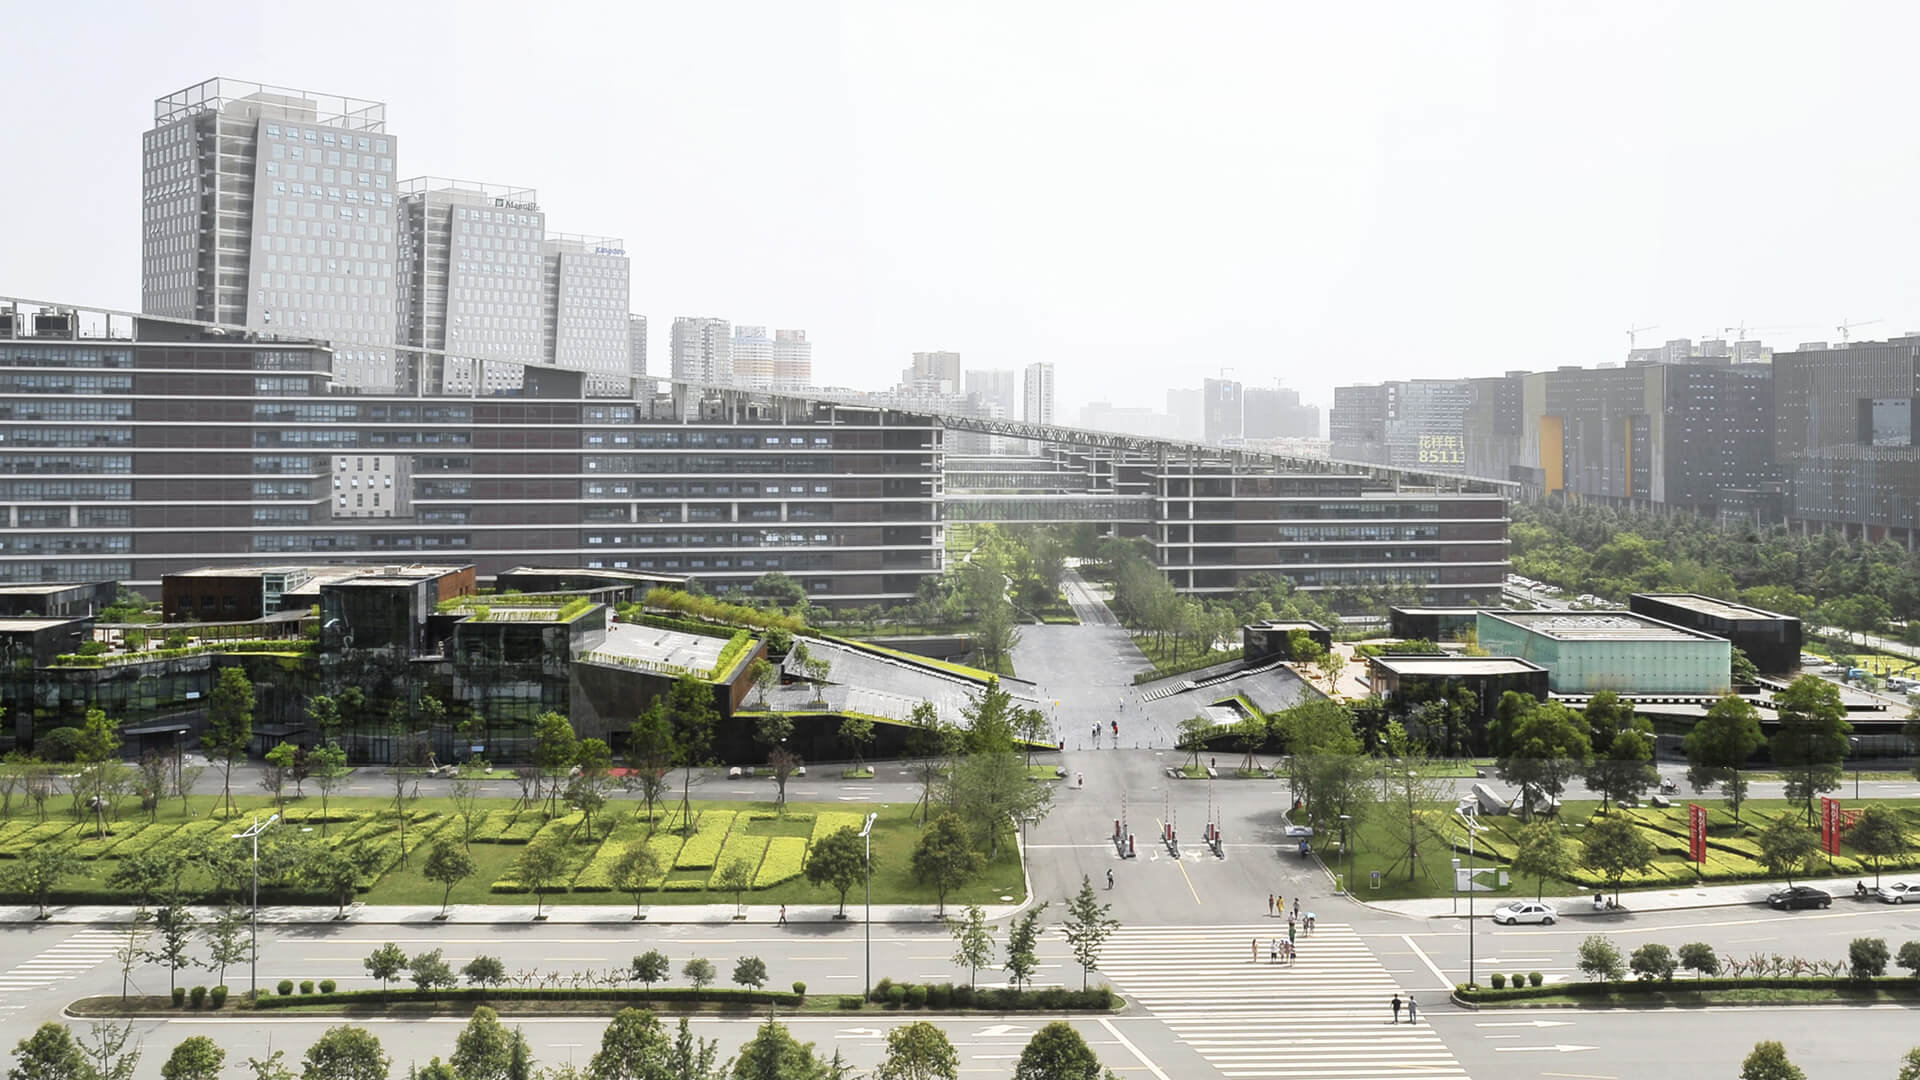 Side view from the axis of the Museum of Modern Art in Chengdu, China, designed by Liu Jiakun |Museum of Modern Art Chengdu | Li Jiakun | STIRworld